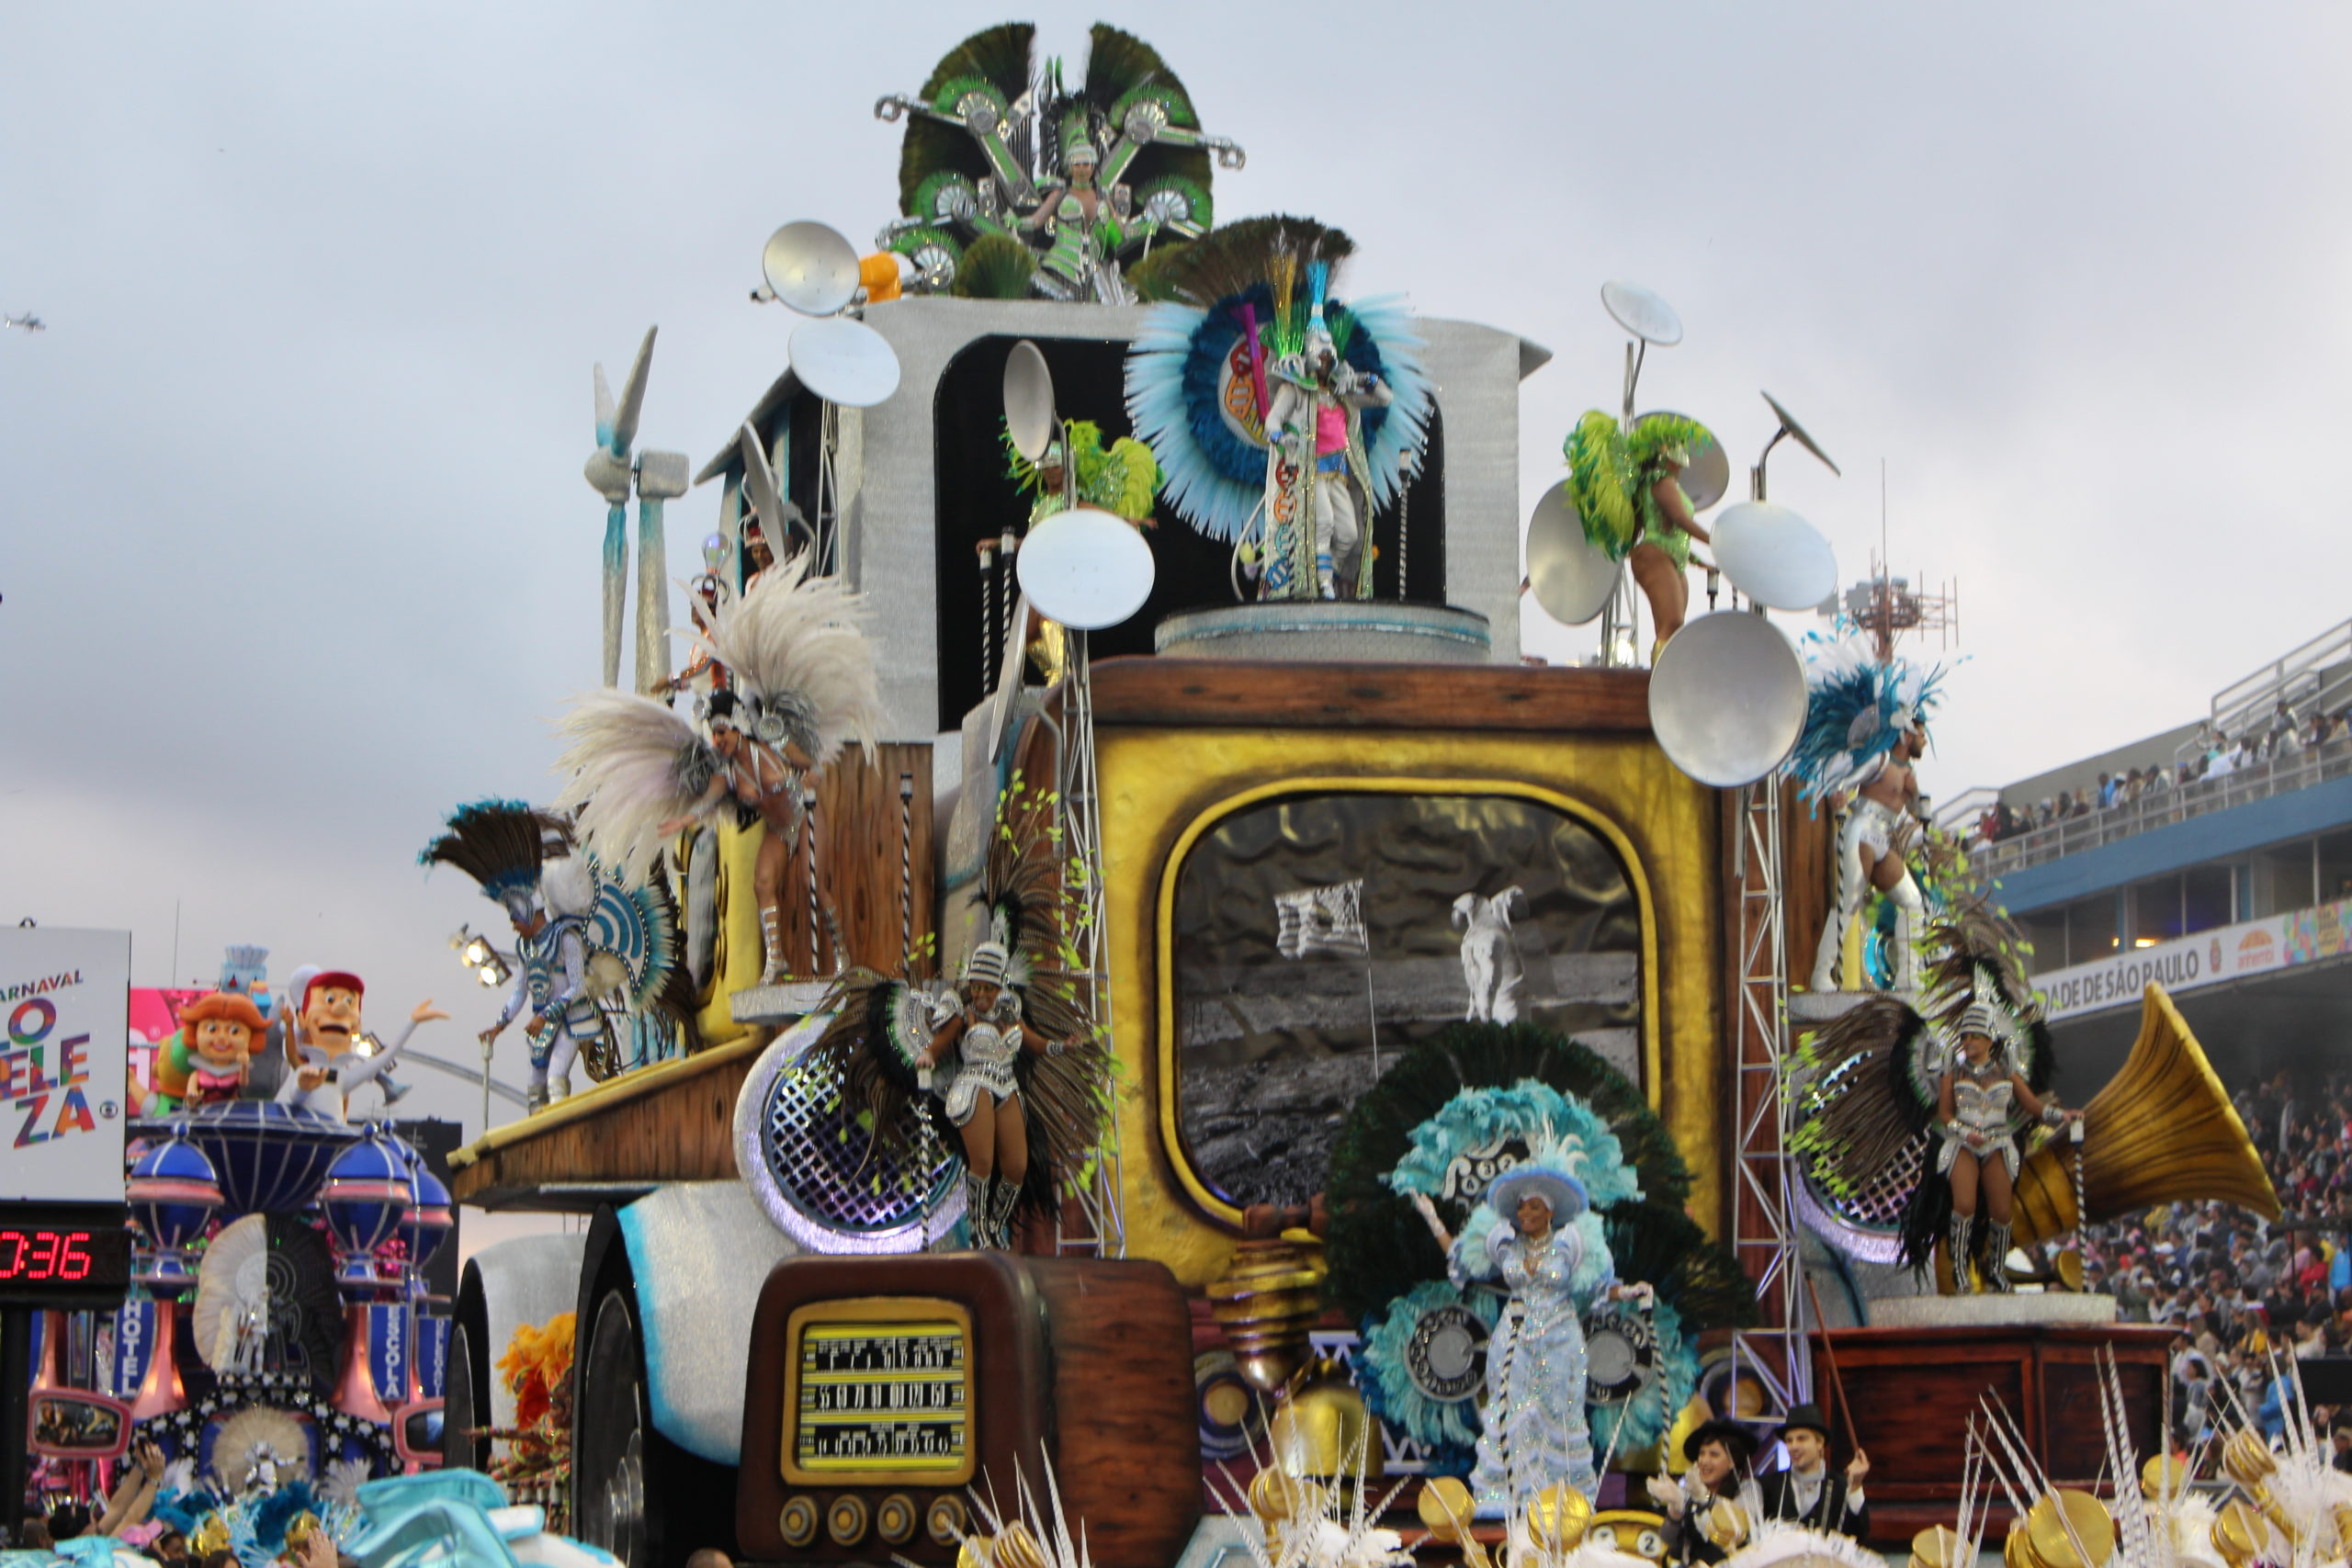 Sao Paulo samba school calls on robots to bring home carnival crown